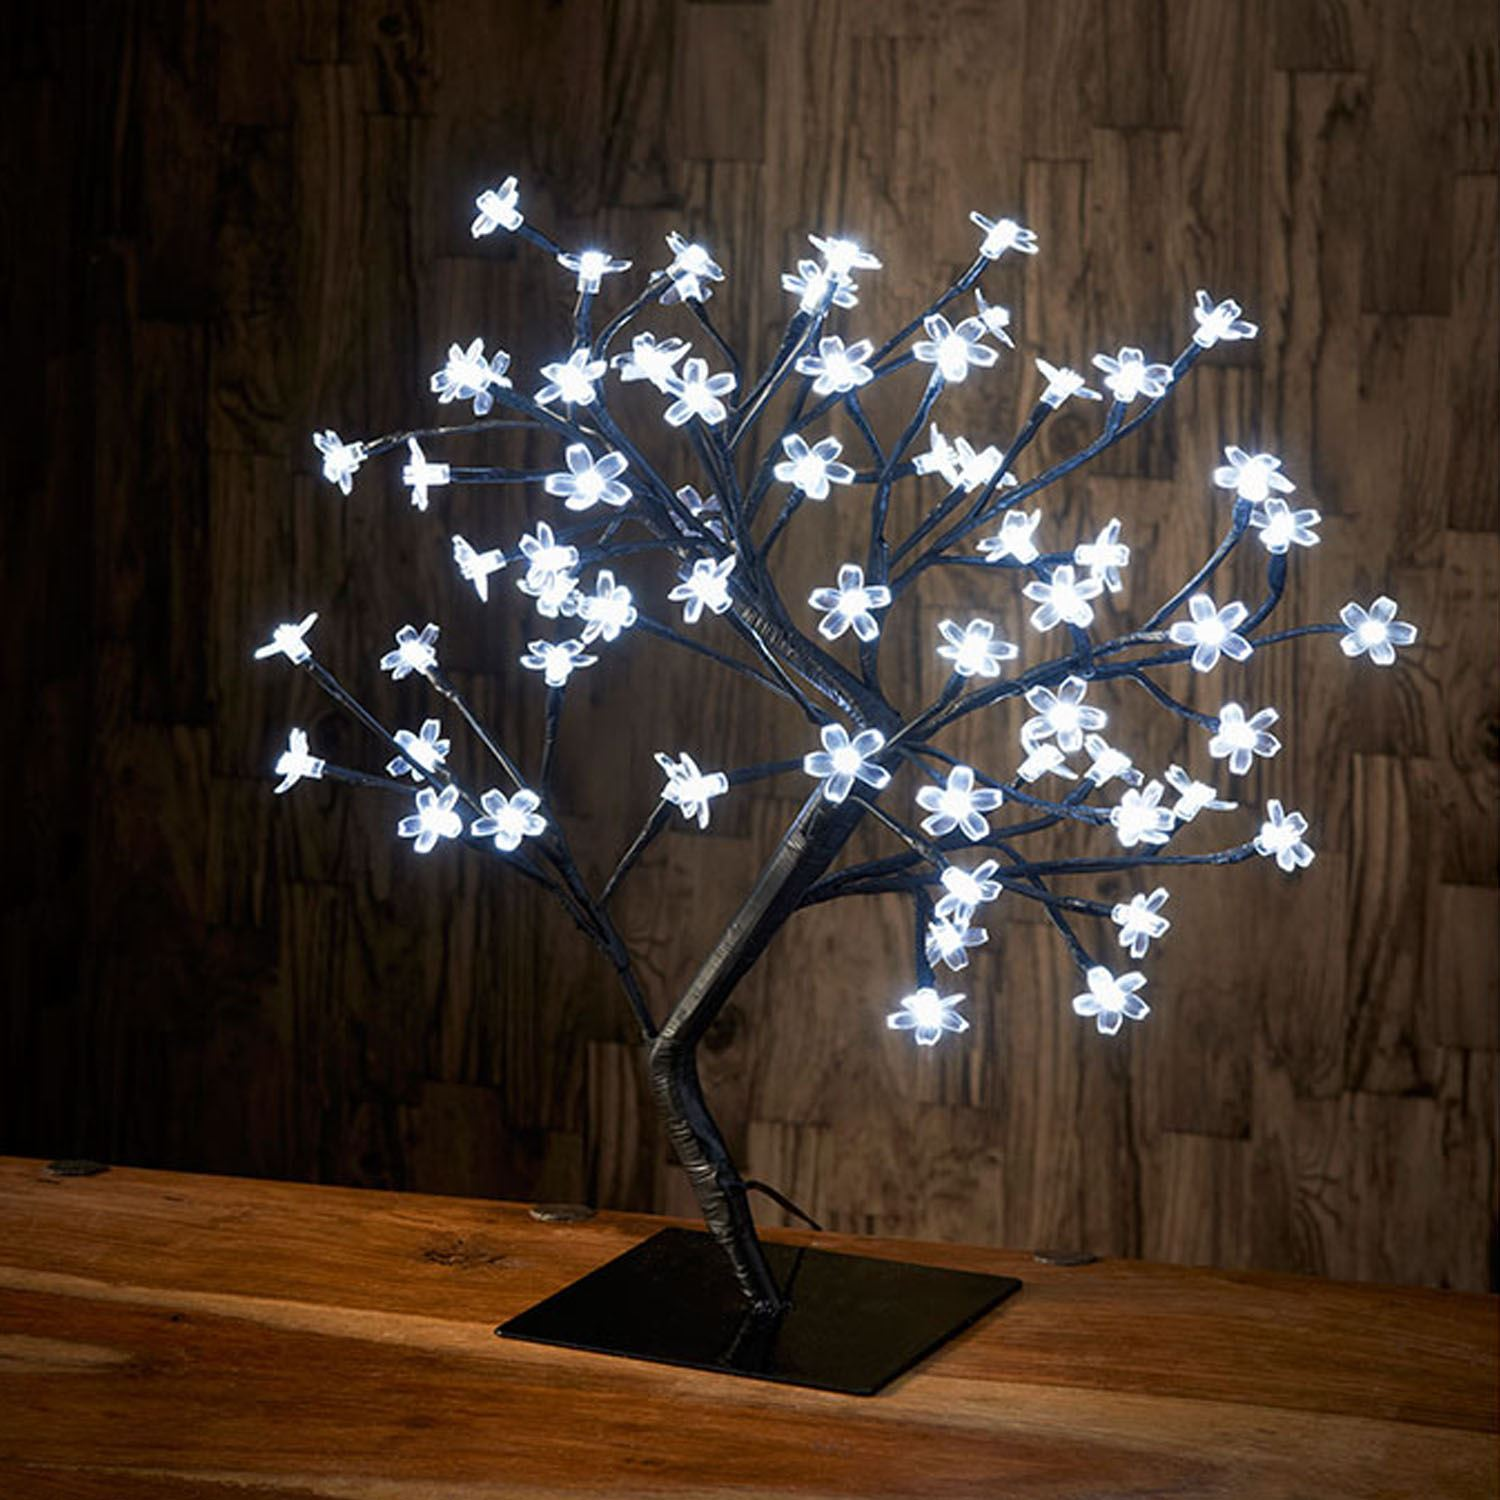 Led Decor Lights: 45cm Led Cherry Blossom Bonsai Tree Fairy Xmas Christmas